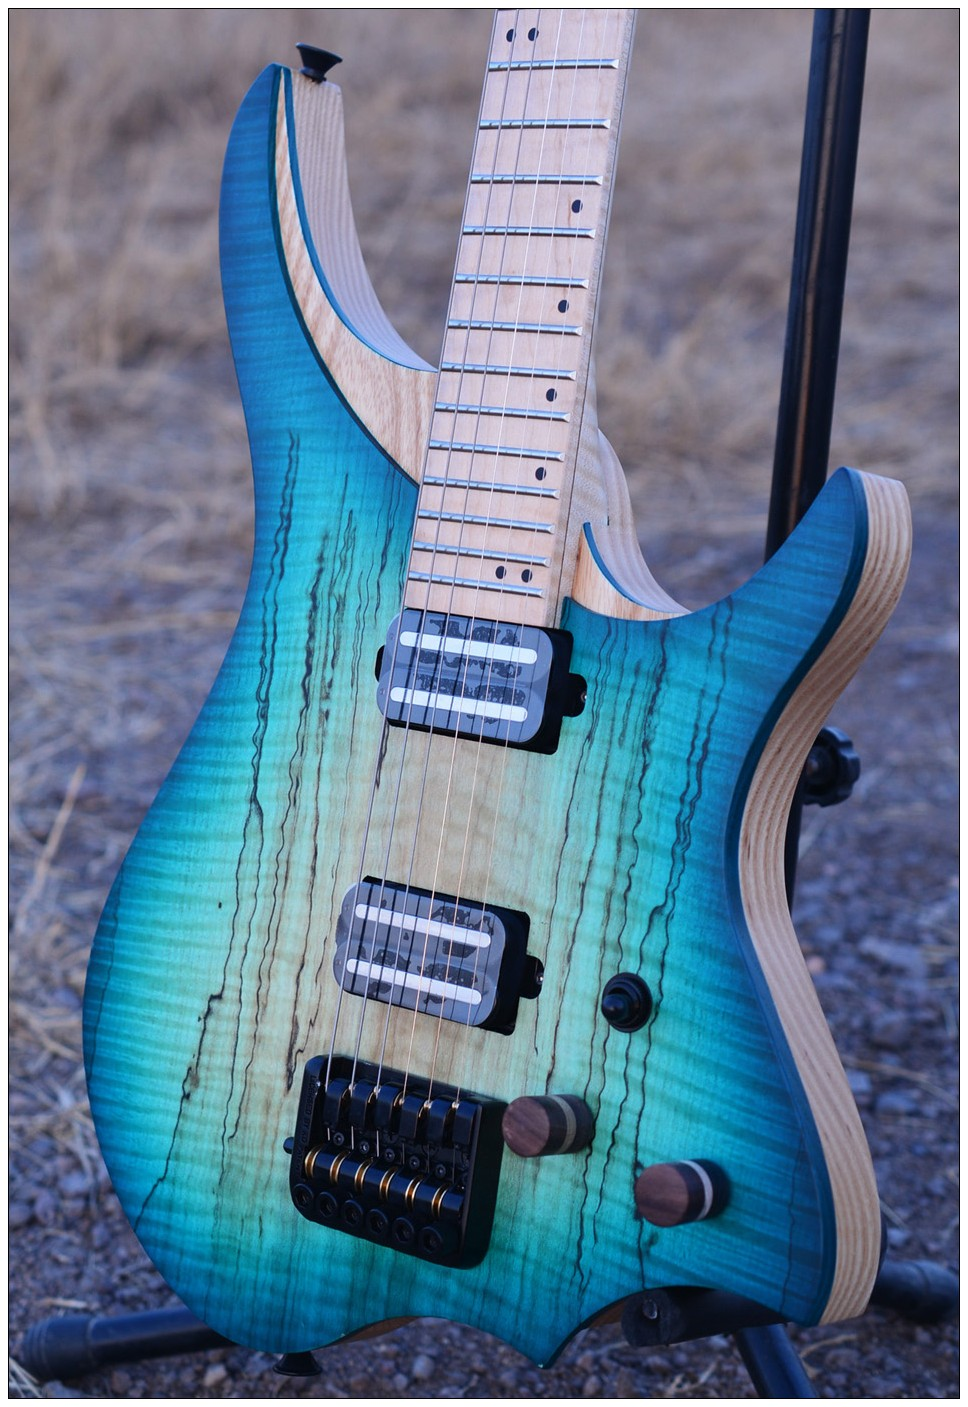 Headless Electric Guitar style Model blue spalted curly maple top Flame maple Neck in stock free shipping